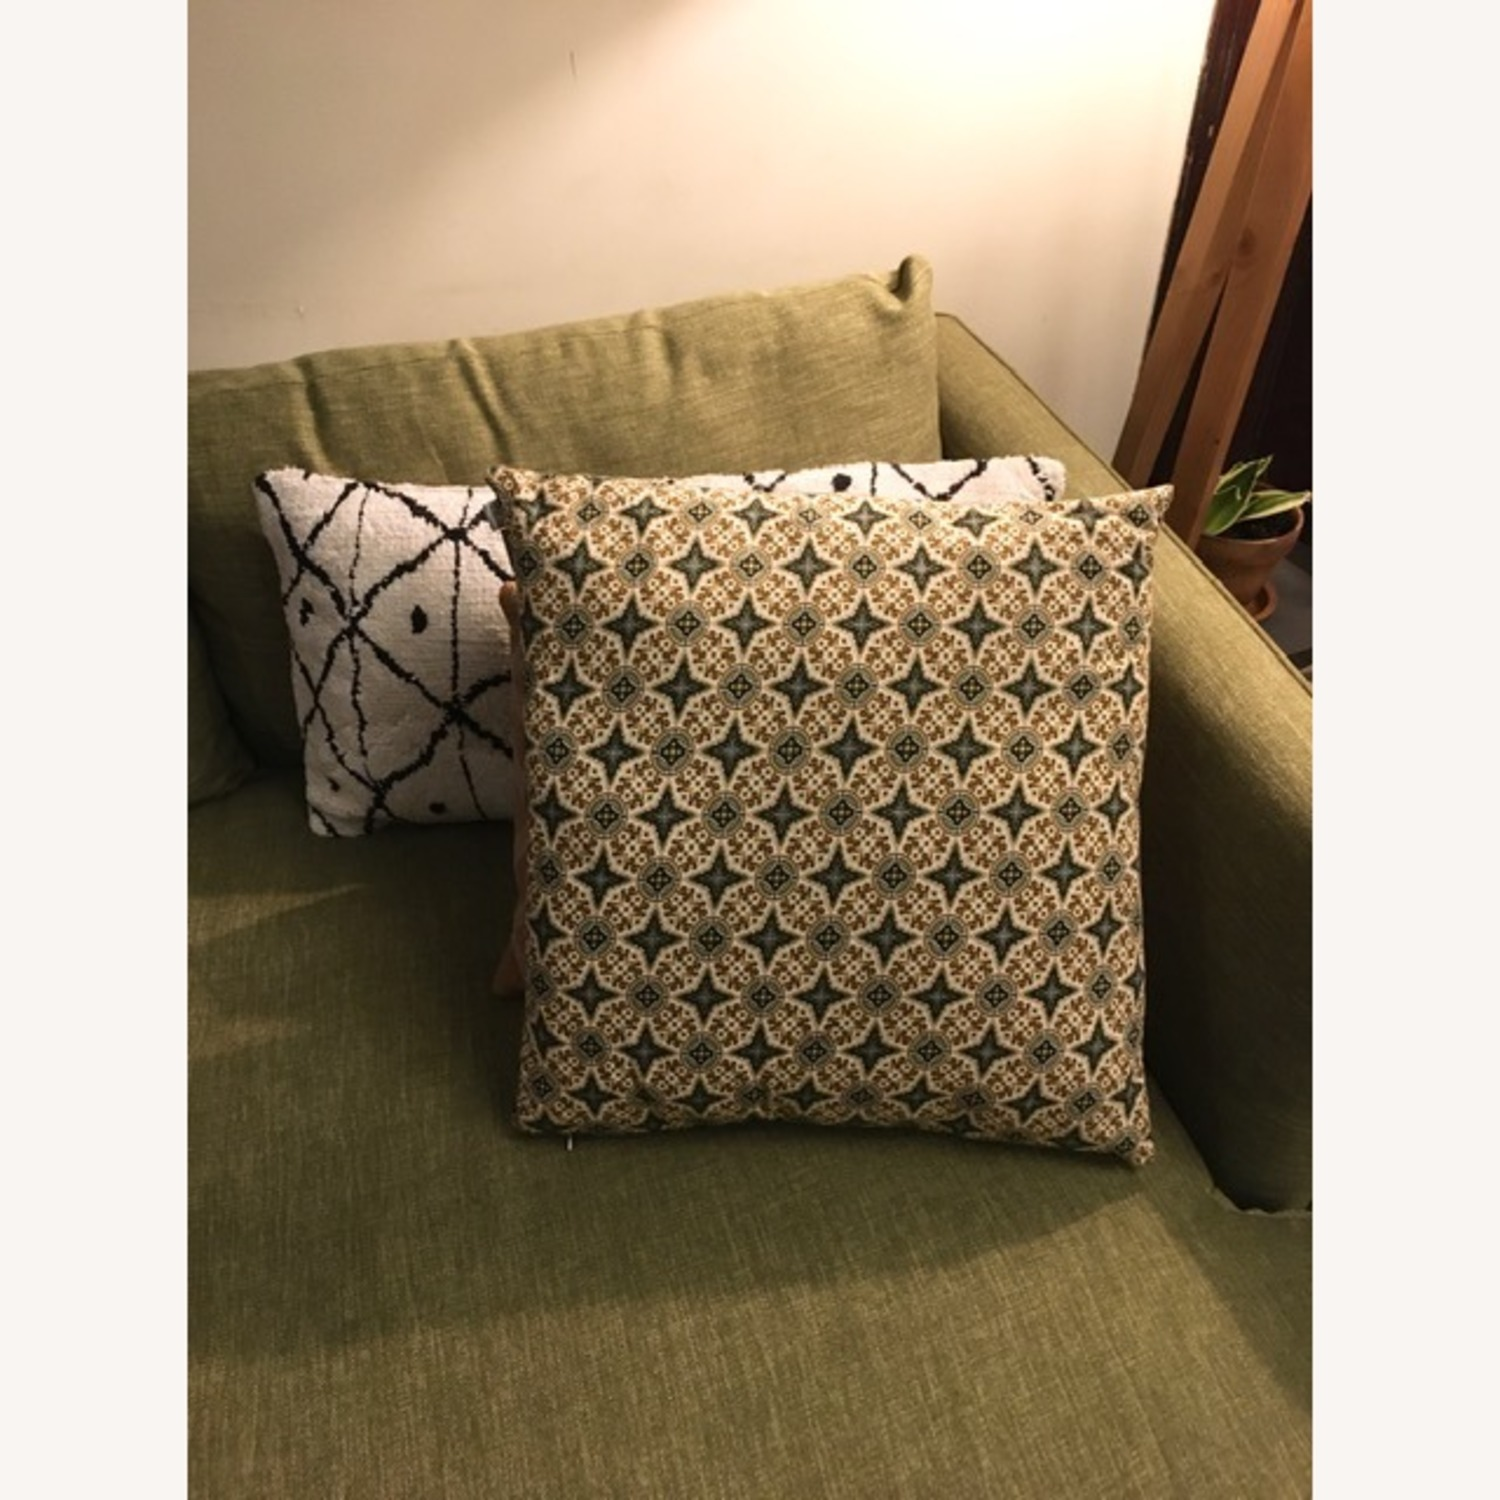 Funko Feather Throw Pillow w/ Balinese Cover